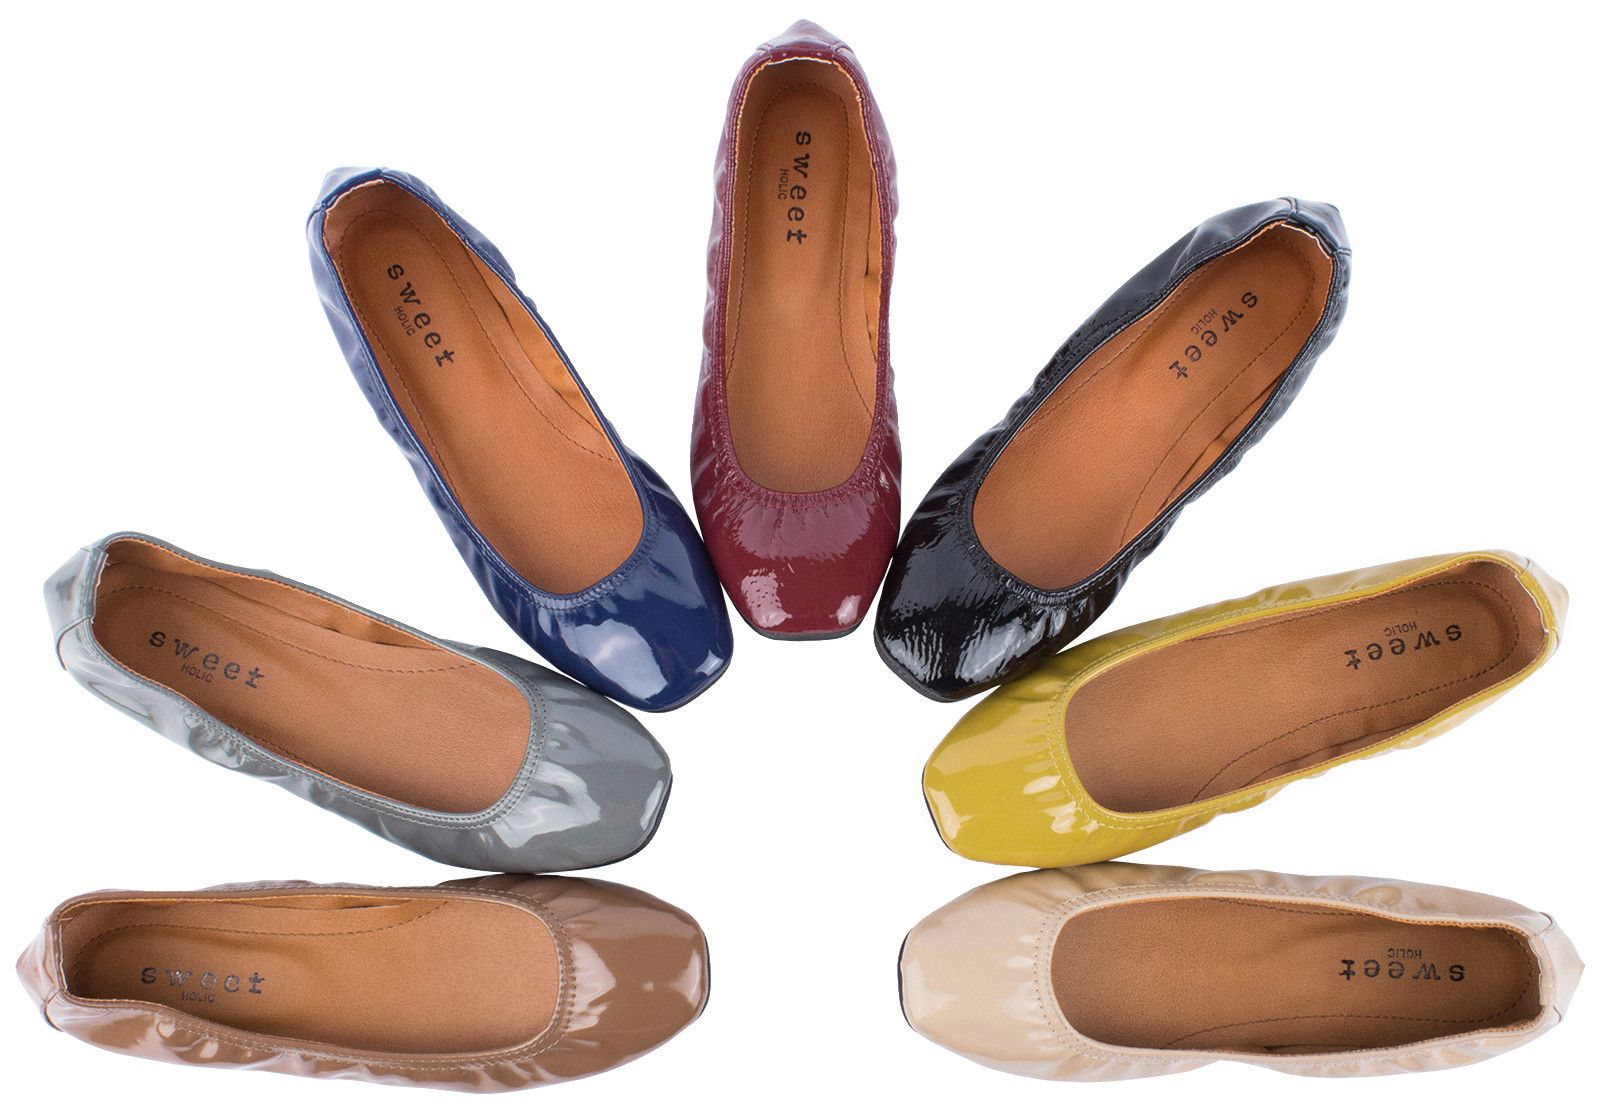 cd07cfb8509 AnnaKastle New Womens Square Toe Patent Leatherette Ballet Flat Shoes US 5  6 7